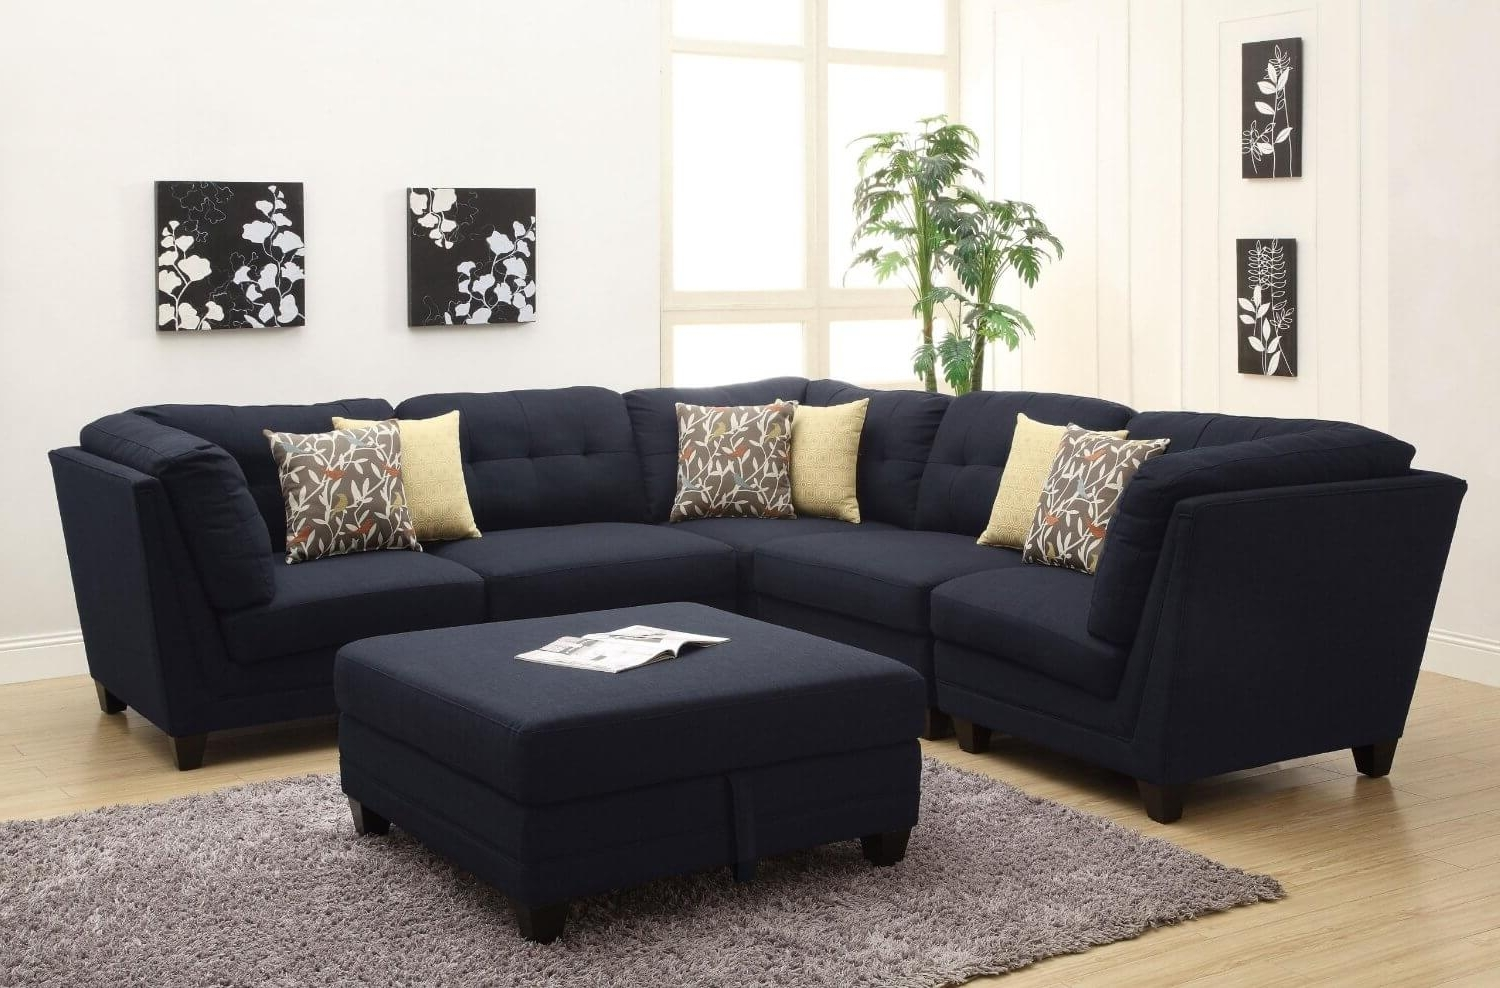 Charmant Most Recent 100 Awesome Sectional Sofas Under $1,000 (2018) Throughout Sectional  Sofas Under 1500